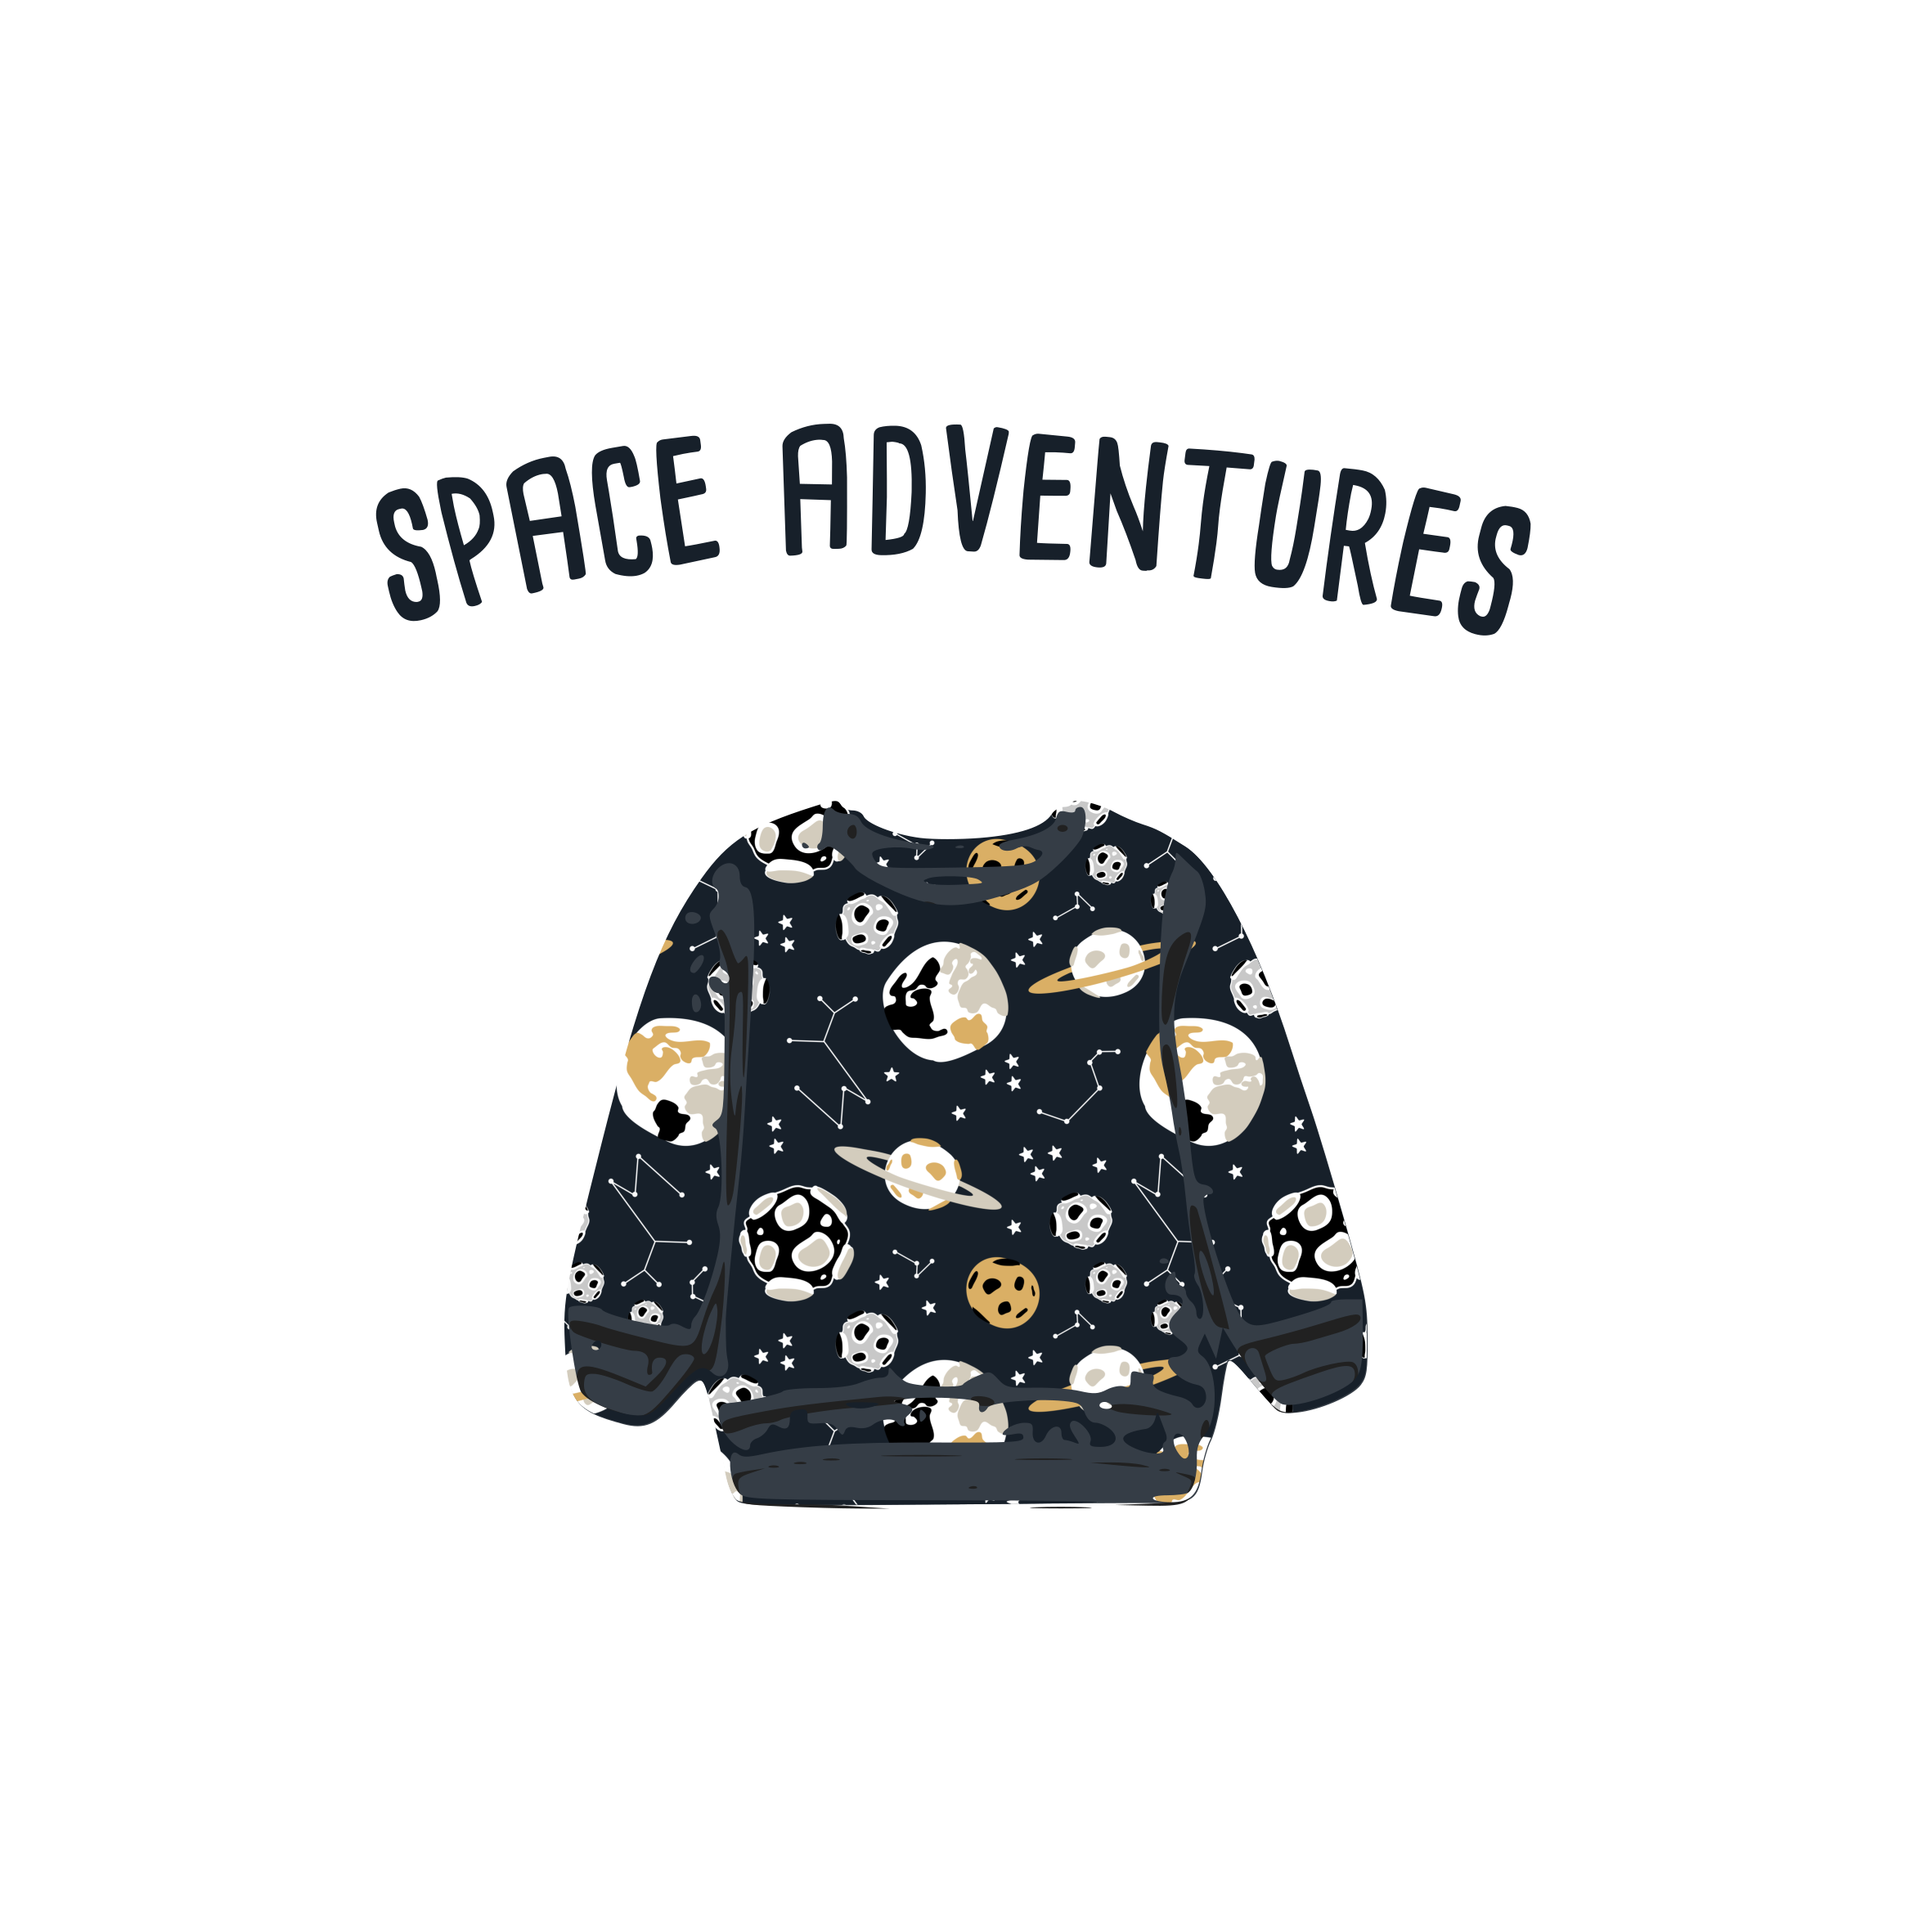 Neues Muster: SPACE ADVENTURES